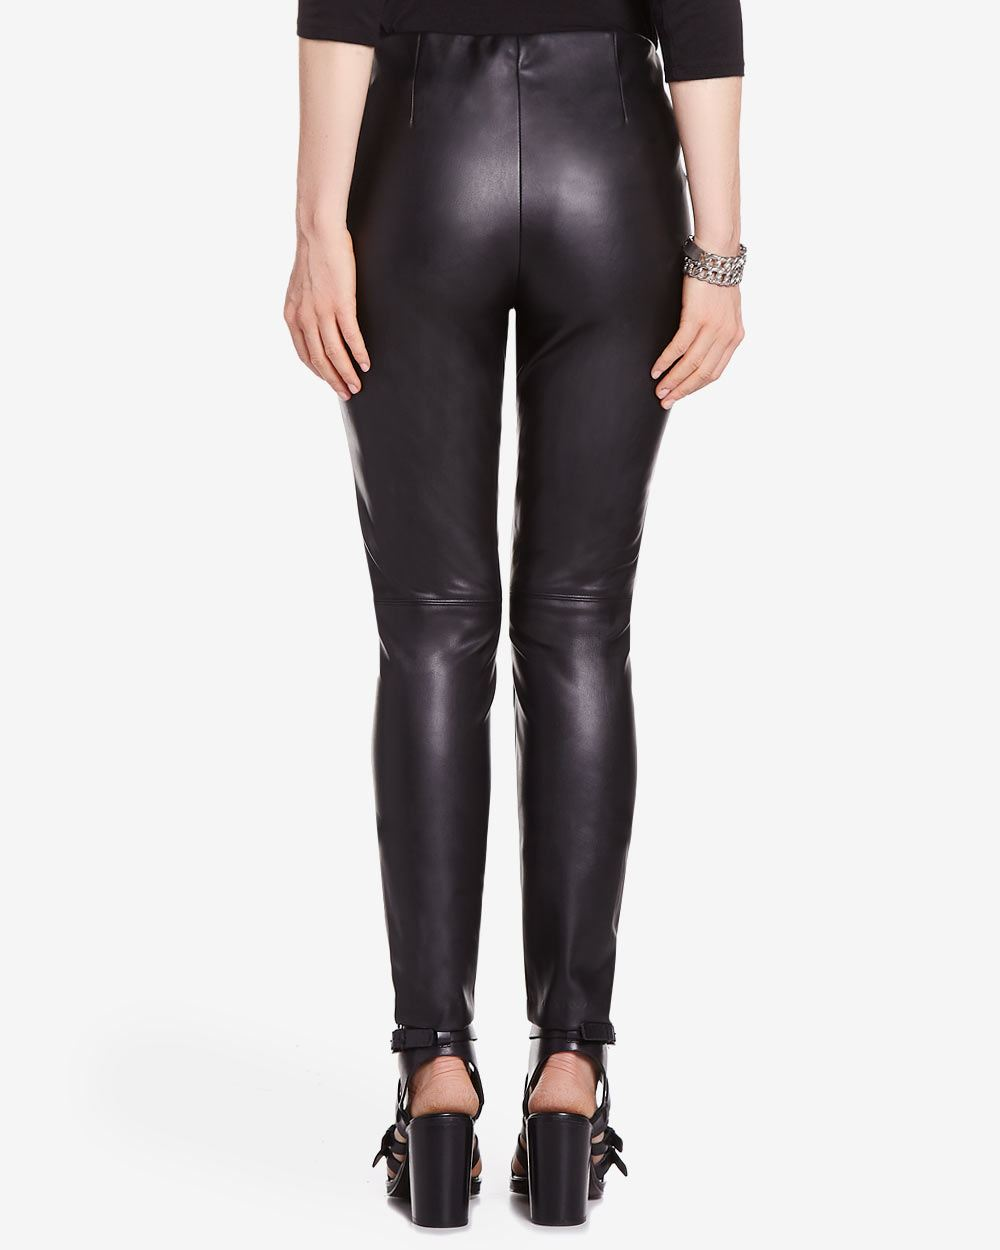 Find faux leather leggings that work great as casual wear, and select options with different leg cuts to complement your fashion-forward look. Ultra-tight legs look great with longer tops and boots, while boot-cut legs make an excellent choice for work and pair well with pumps. Enjoy firm control for a smooth profile with high-waist leather leggings.